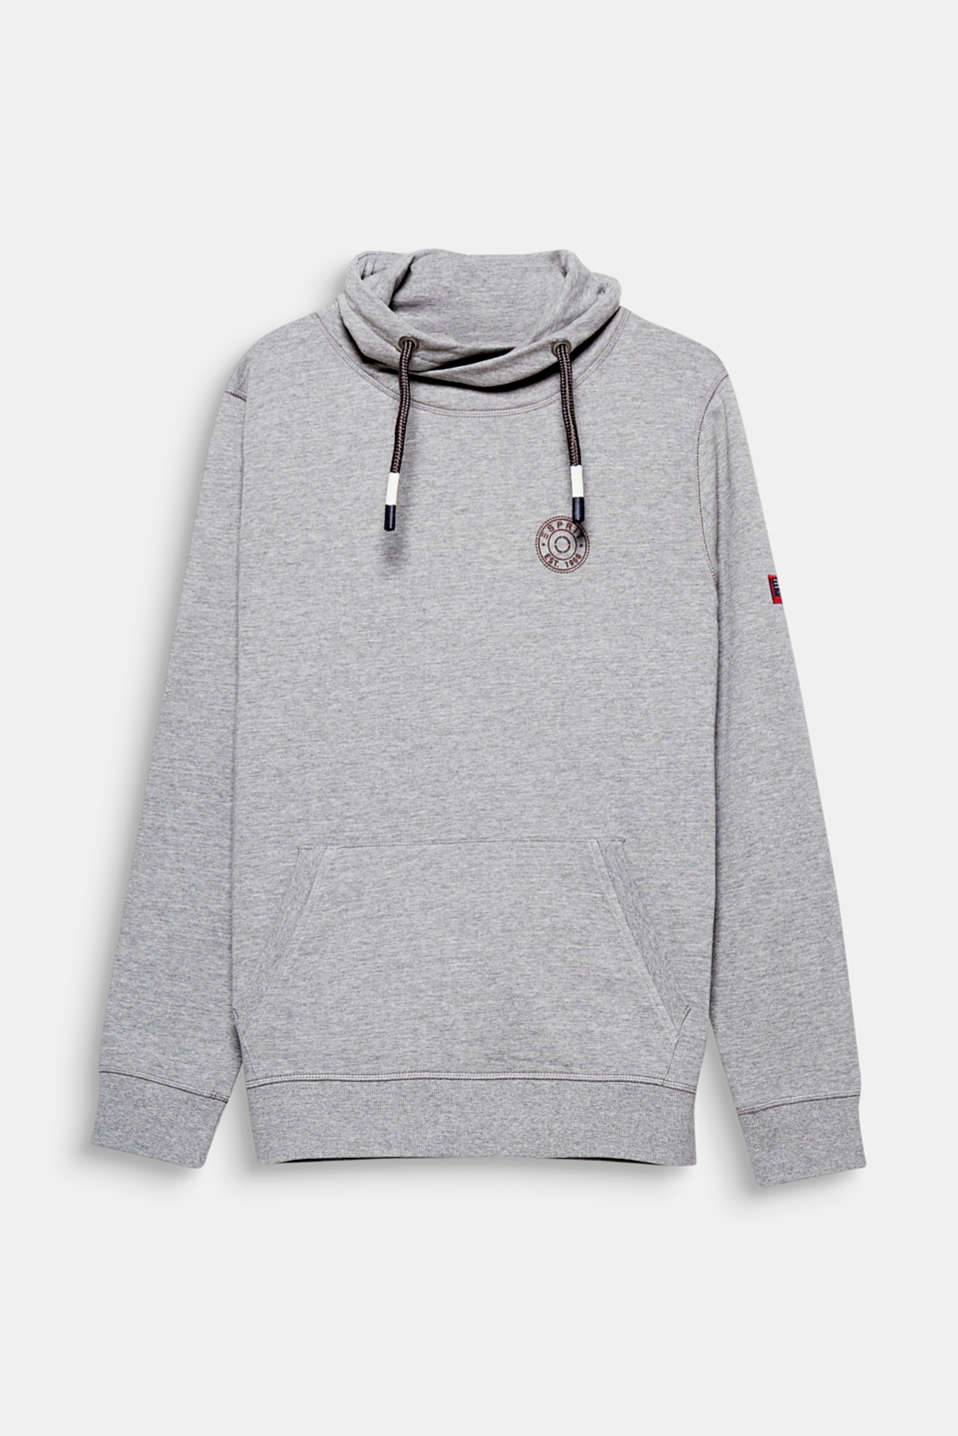 The sweatshirt for a perfect casual look: A drawstring collar and soft sweatshirt fabric create a cosy touch.